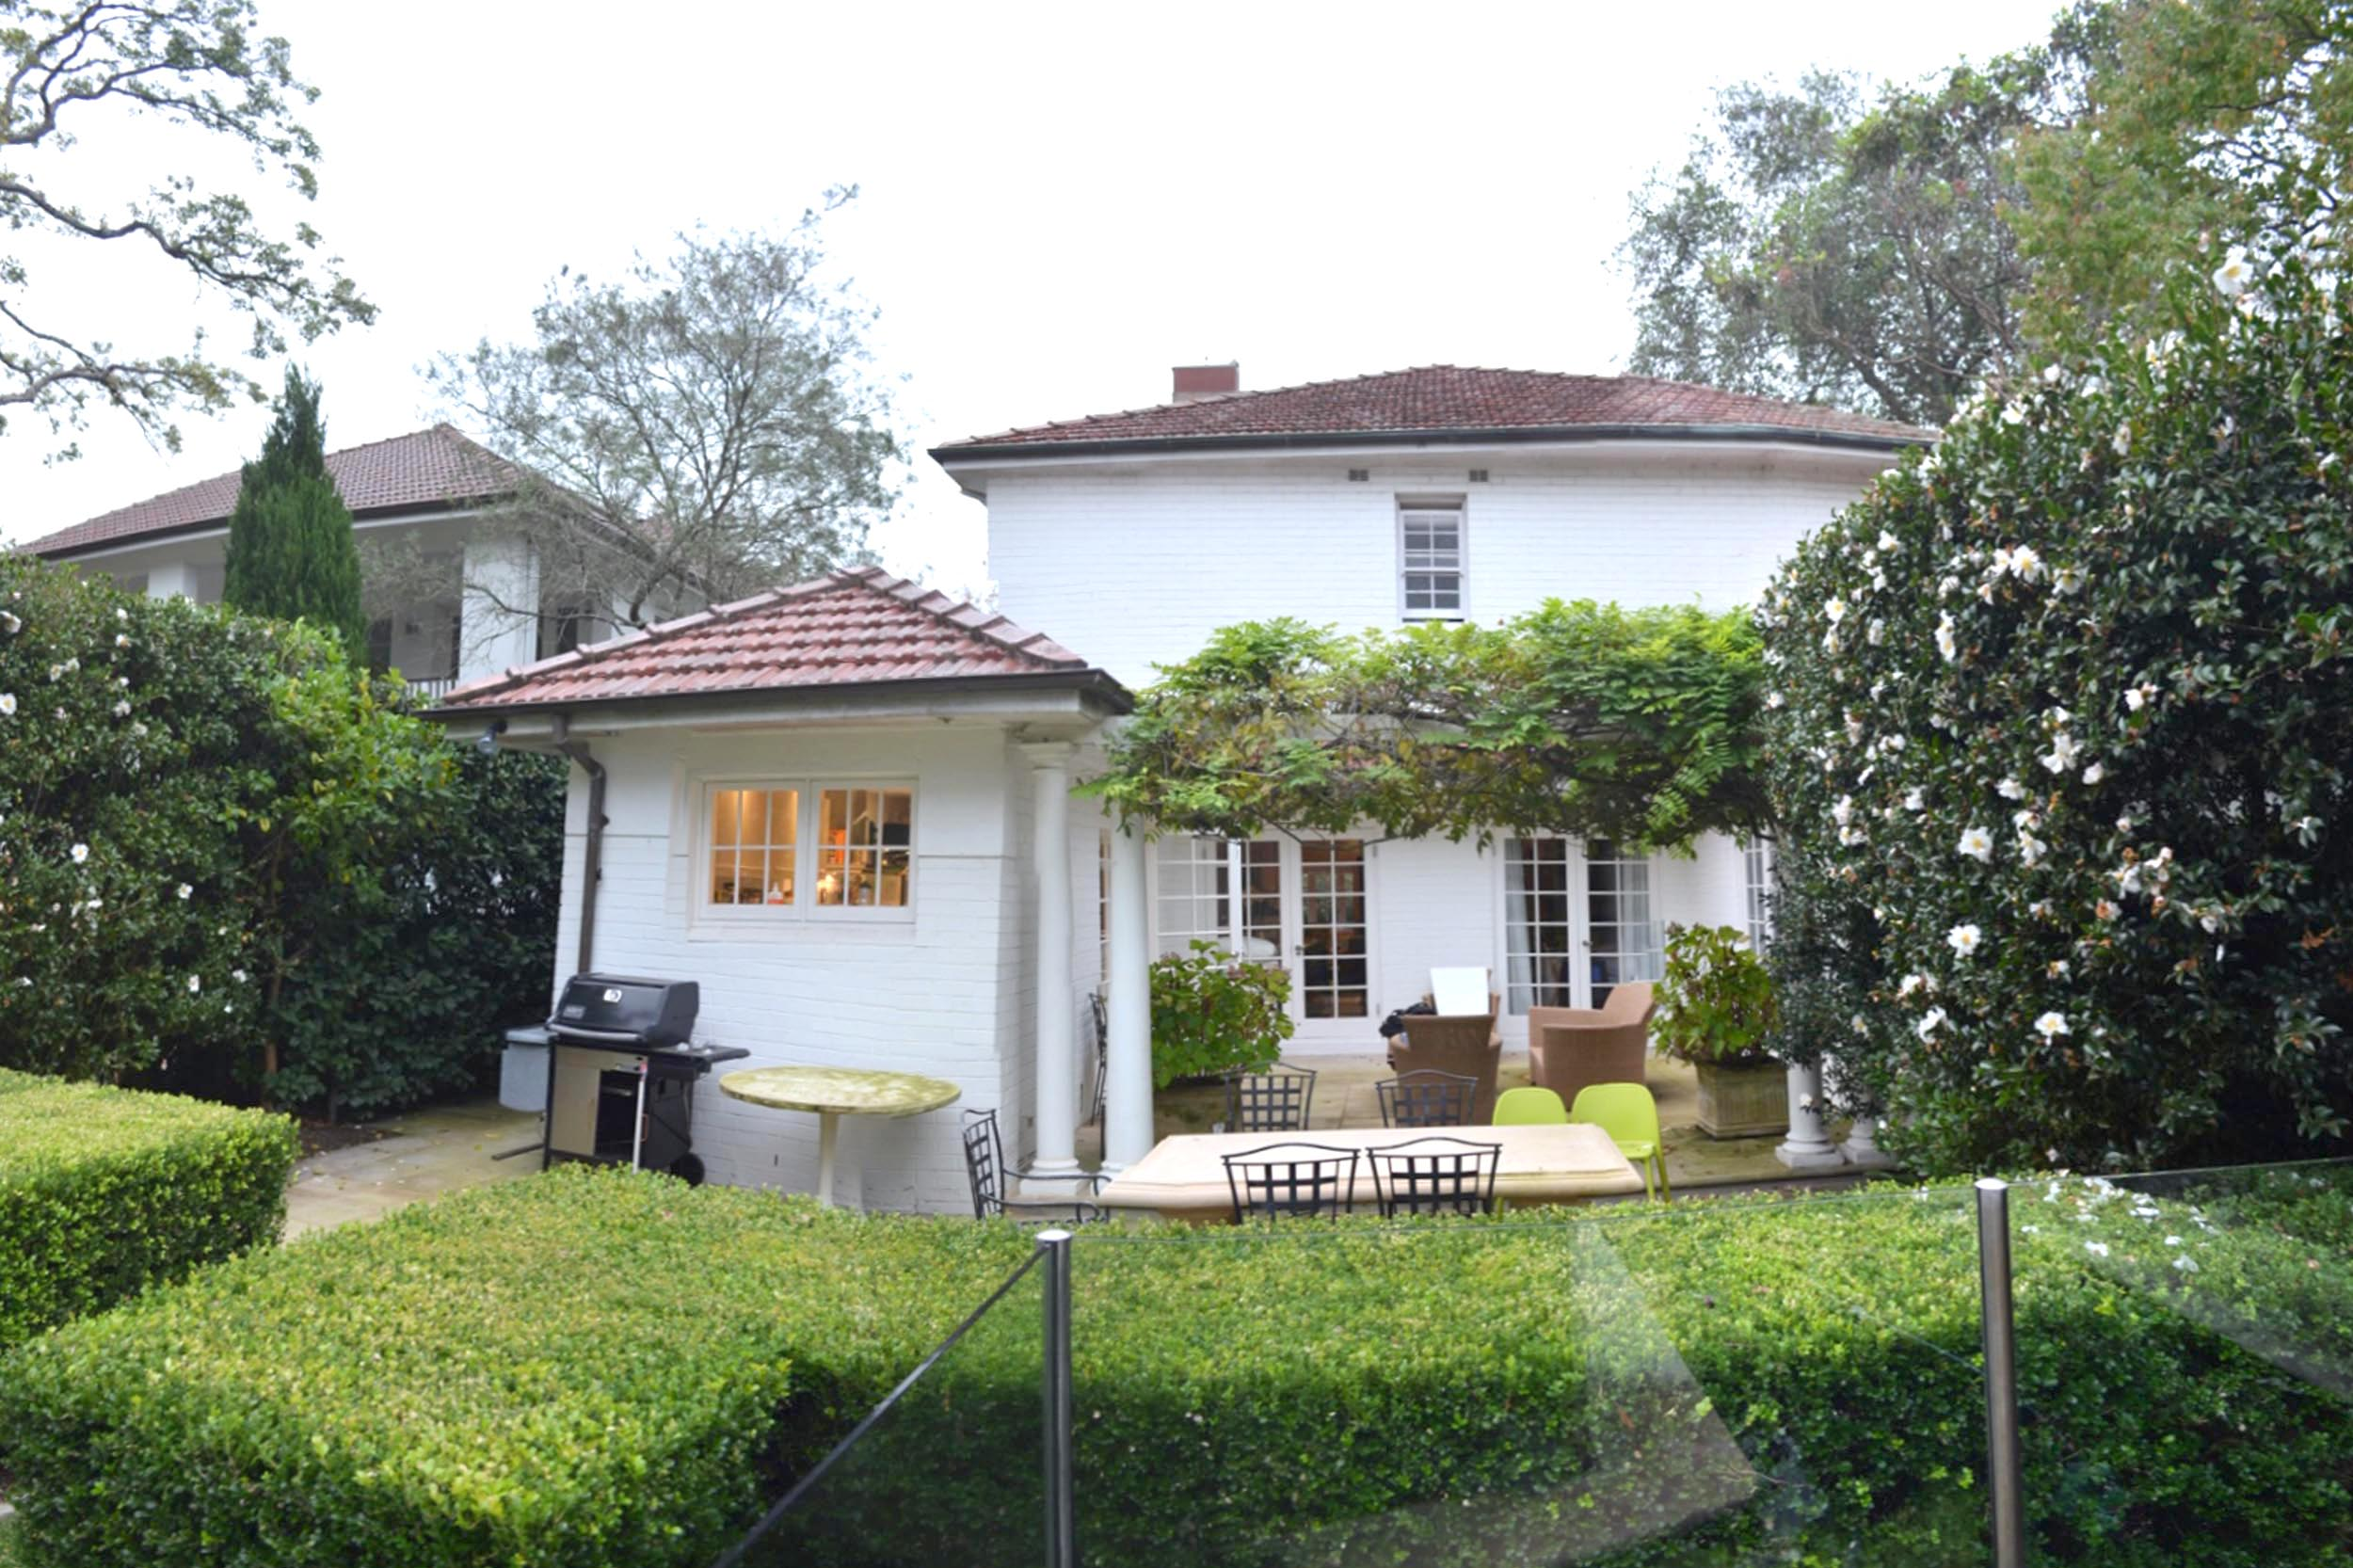 THE SCULPTURE GARDEN HOUSE, WOOLLAHRA